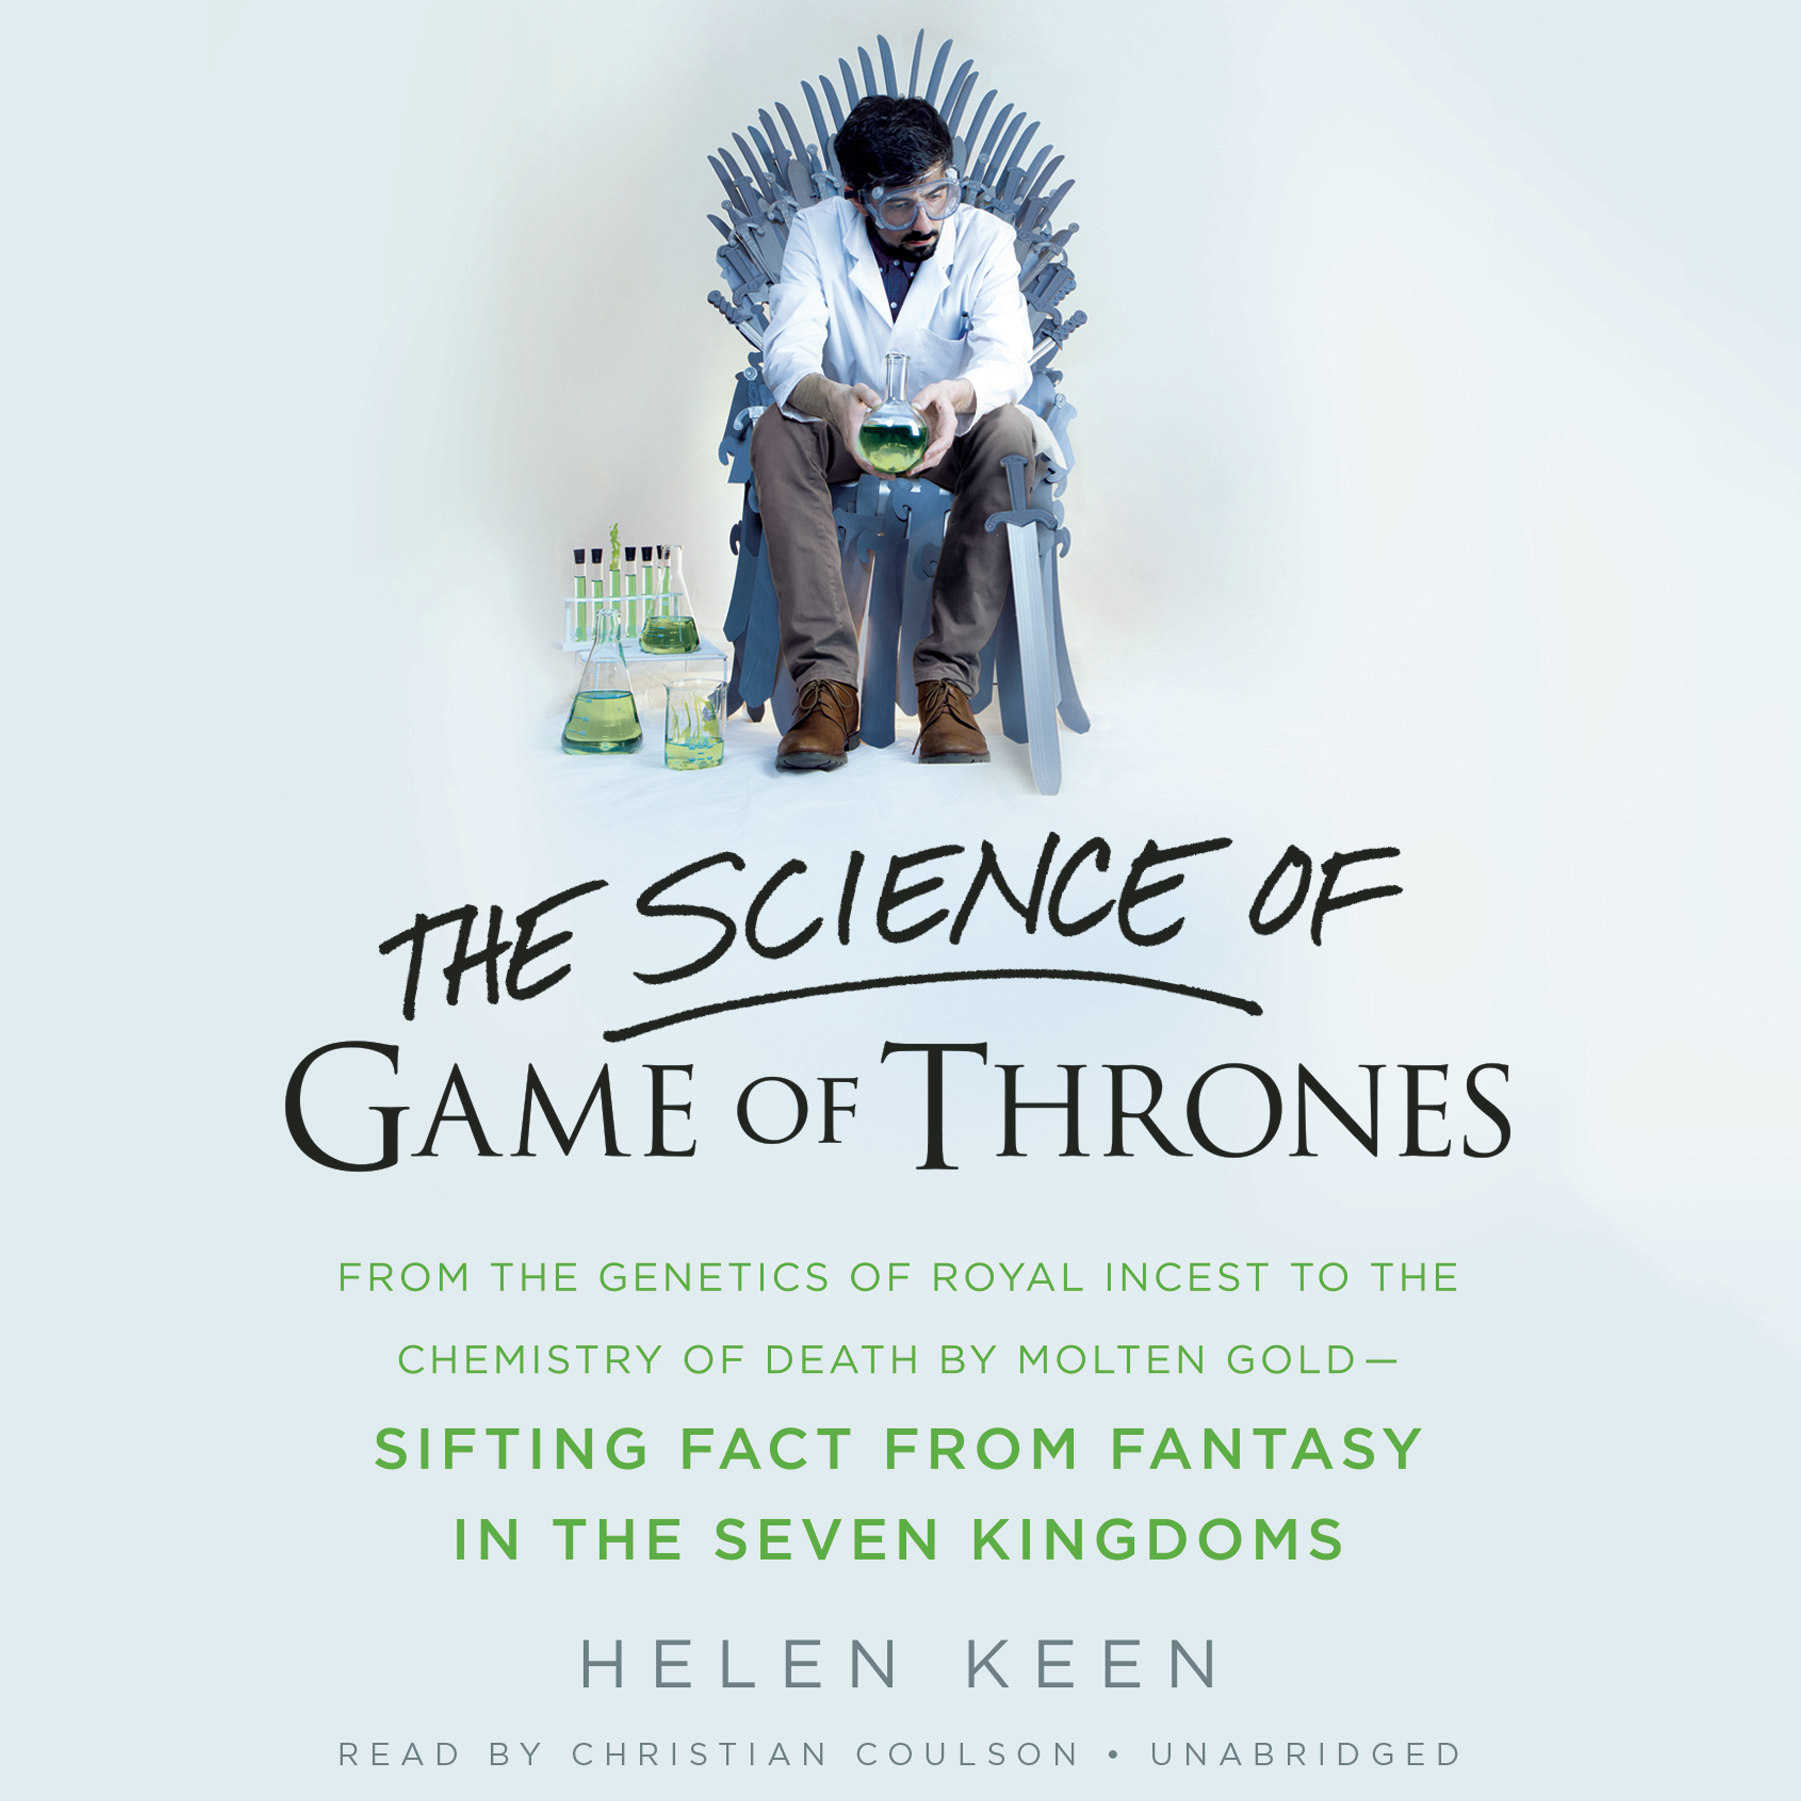 Printable The Science of Game of Thrones: From the genetics of royal incest to the chemistry of death by molten gold – sifting fact from fantasy in the Seven Kingdoms Audiobook Cover Art